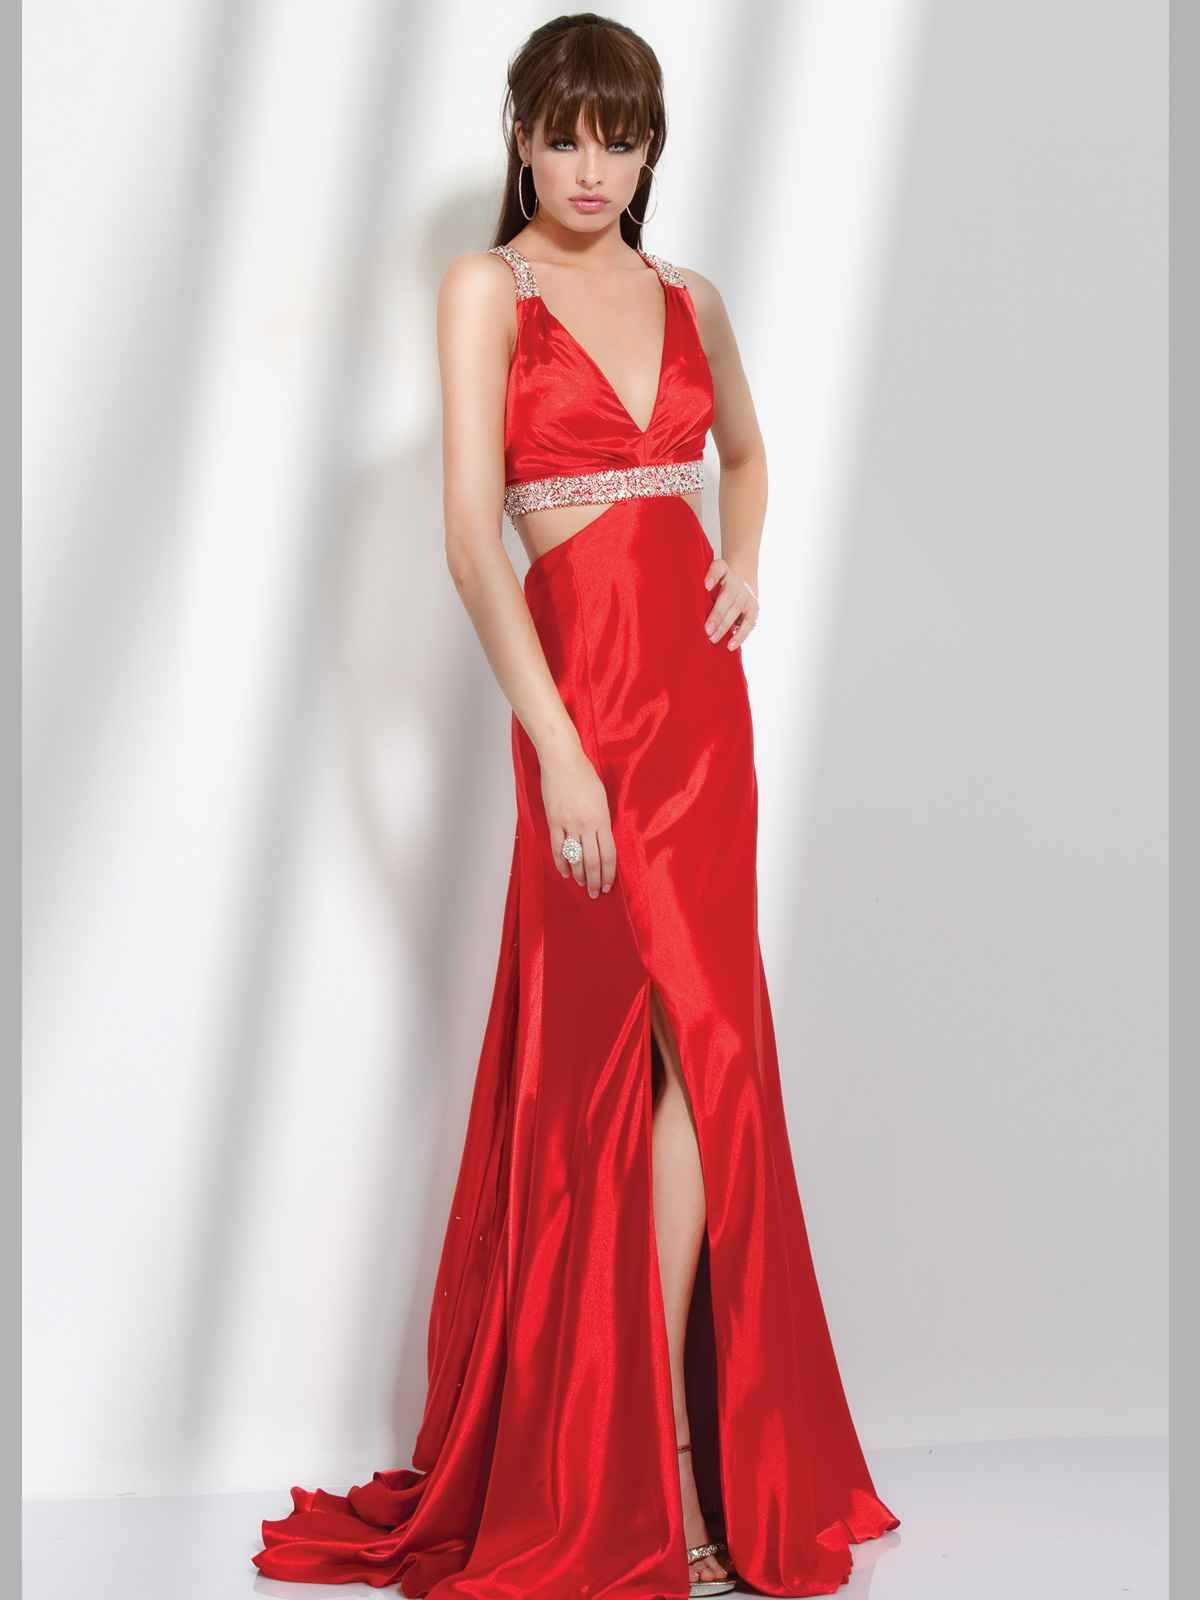 Hairstyle & Make-Up Ideas For Wearing A Red Dress - Women pertaining to Cool Hairstyles For Red Dress